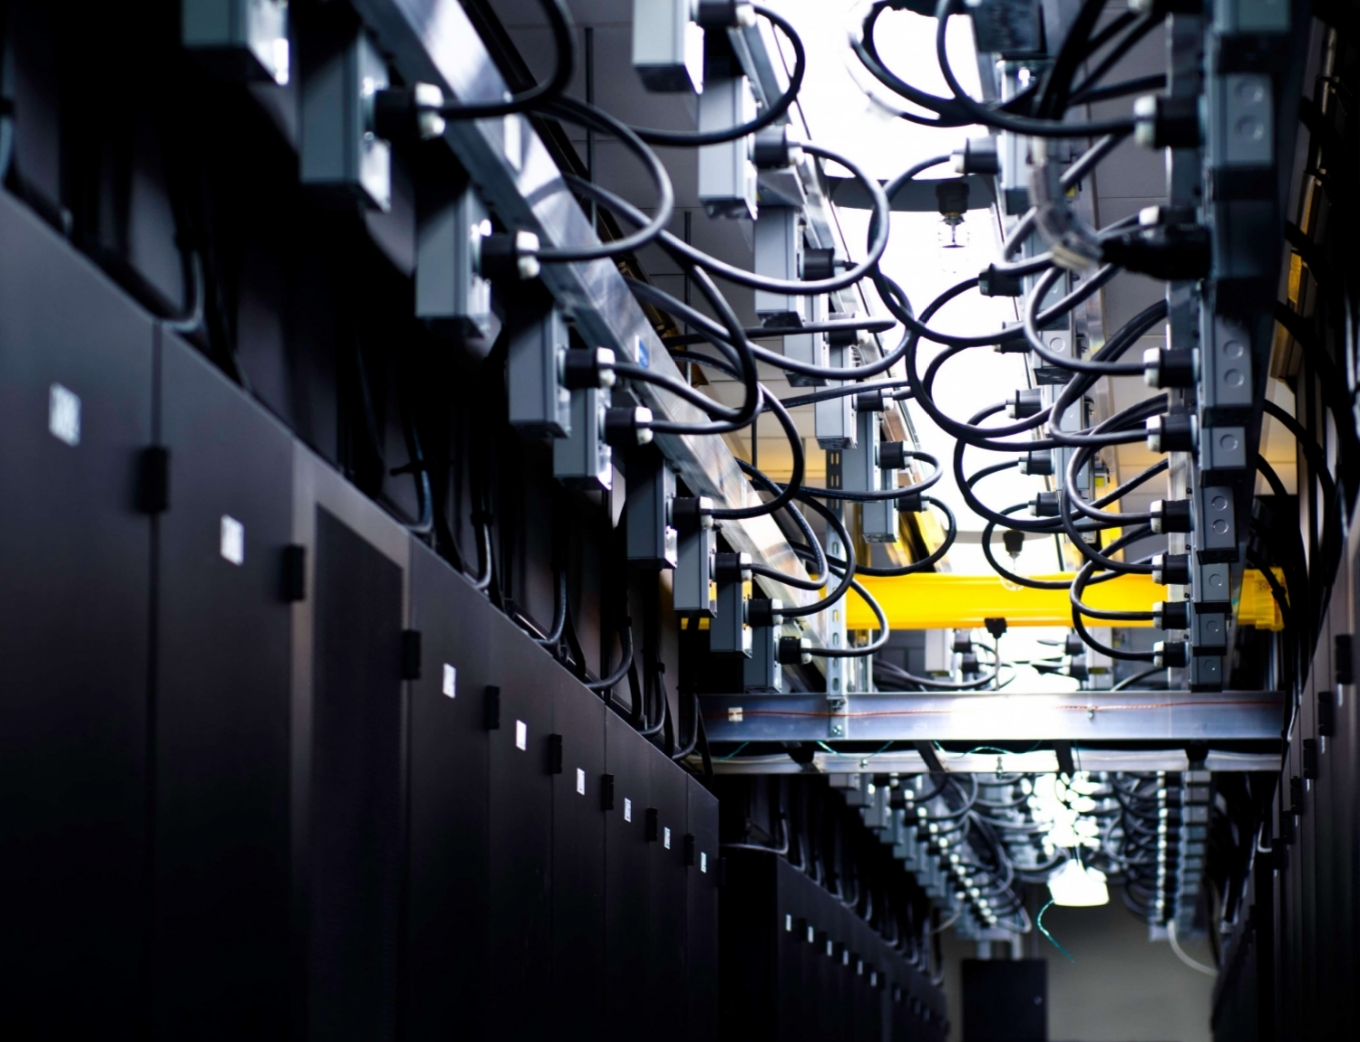 freepoint technologies blog header image database servers wires tangled yellow bar